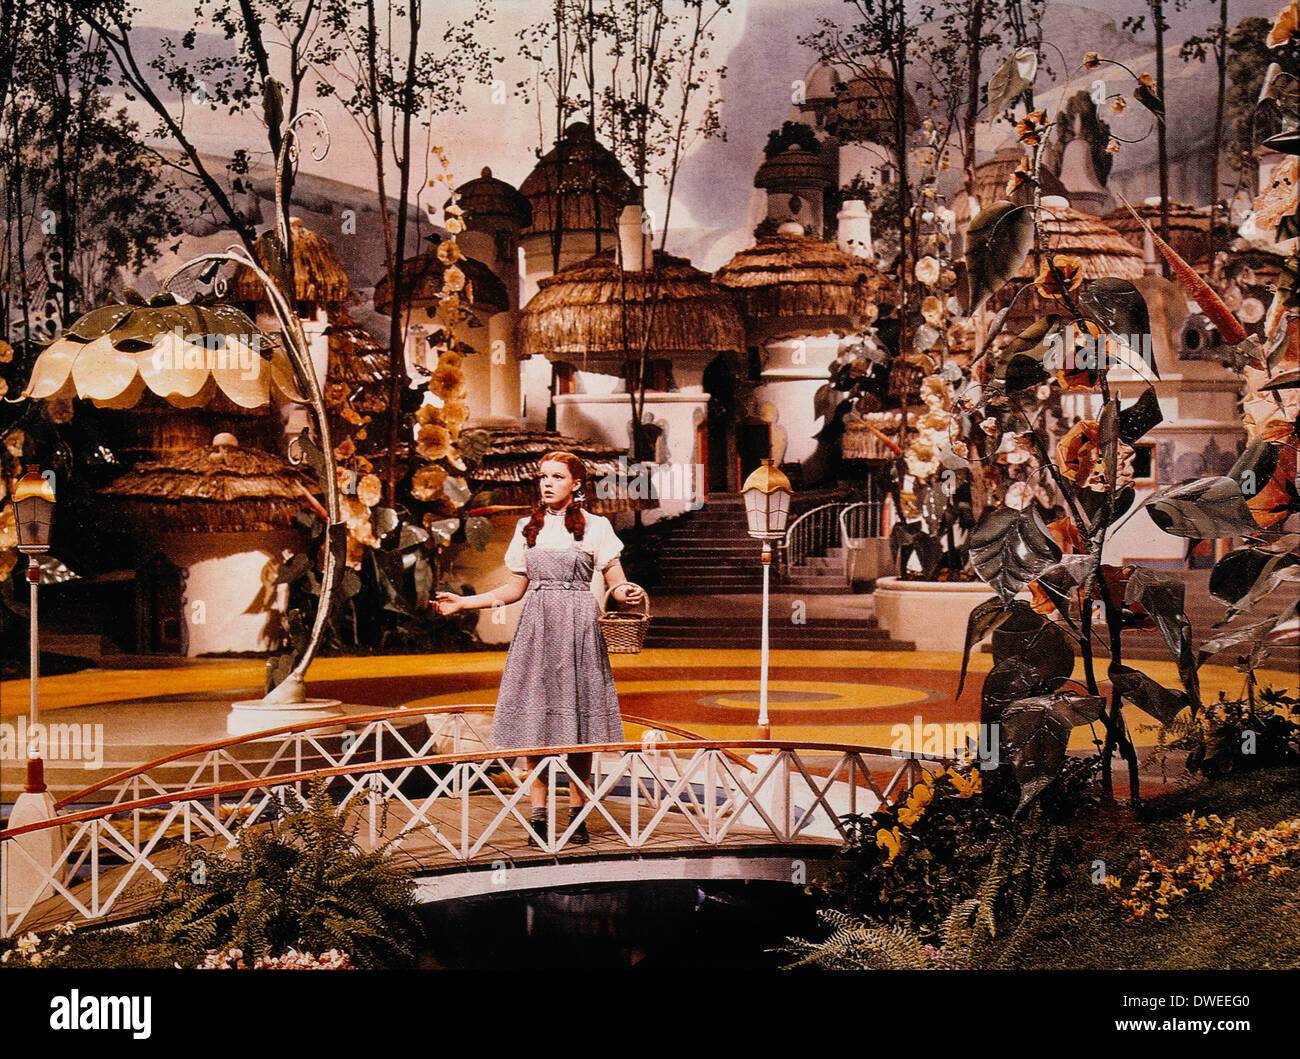 Judy Garland, on-set of the Film, 'The Wizard of Oz', 1939 - Stock Image